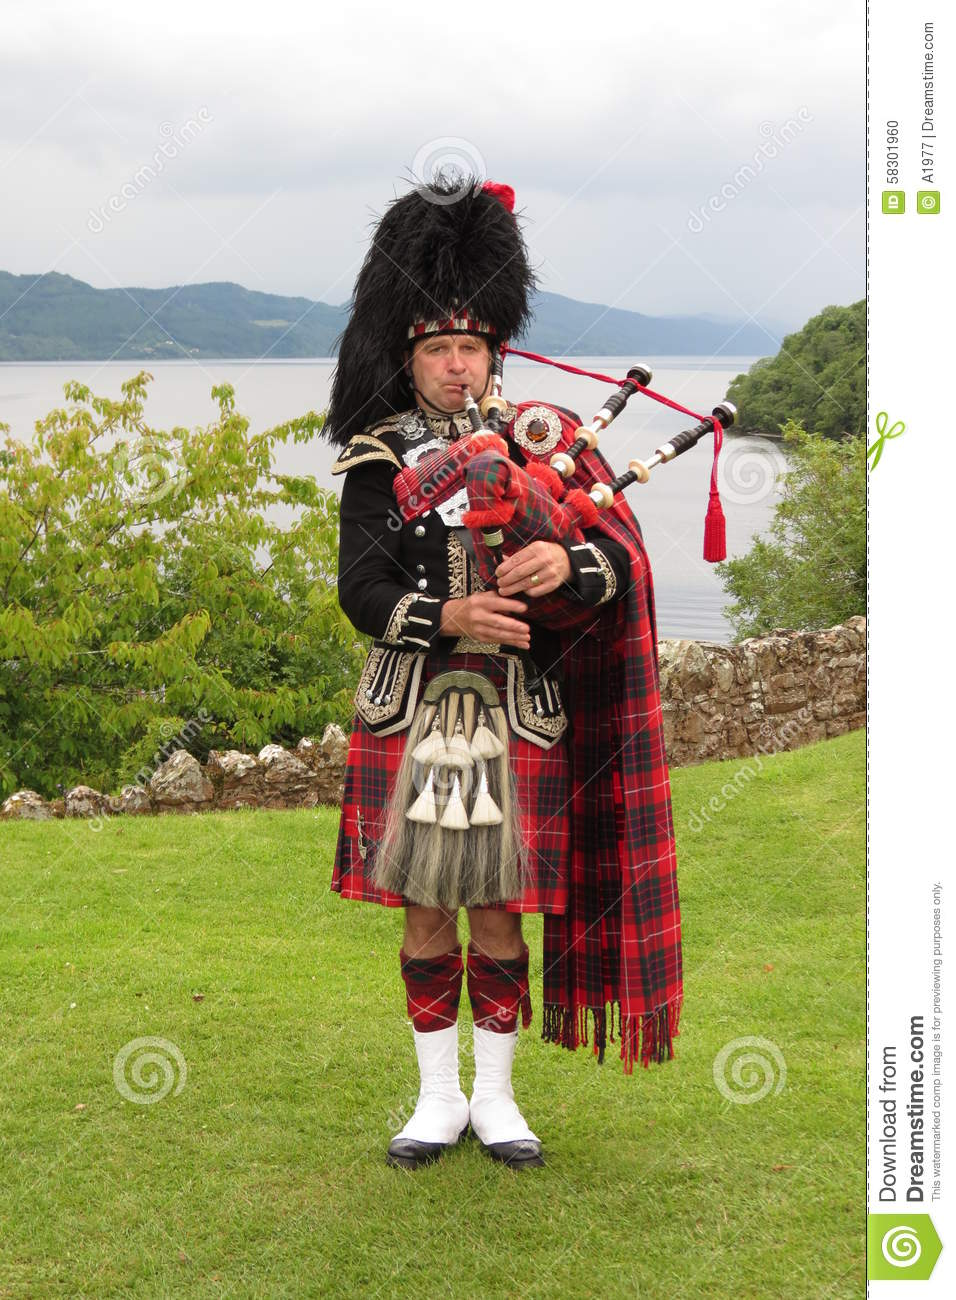 scottish bagpiper editorial image image 58301960